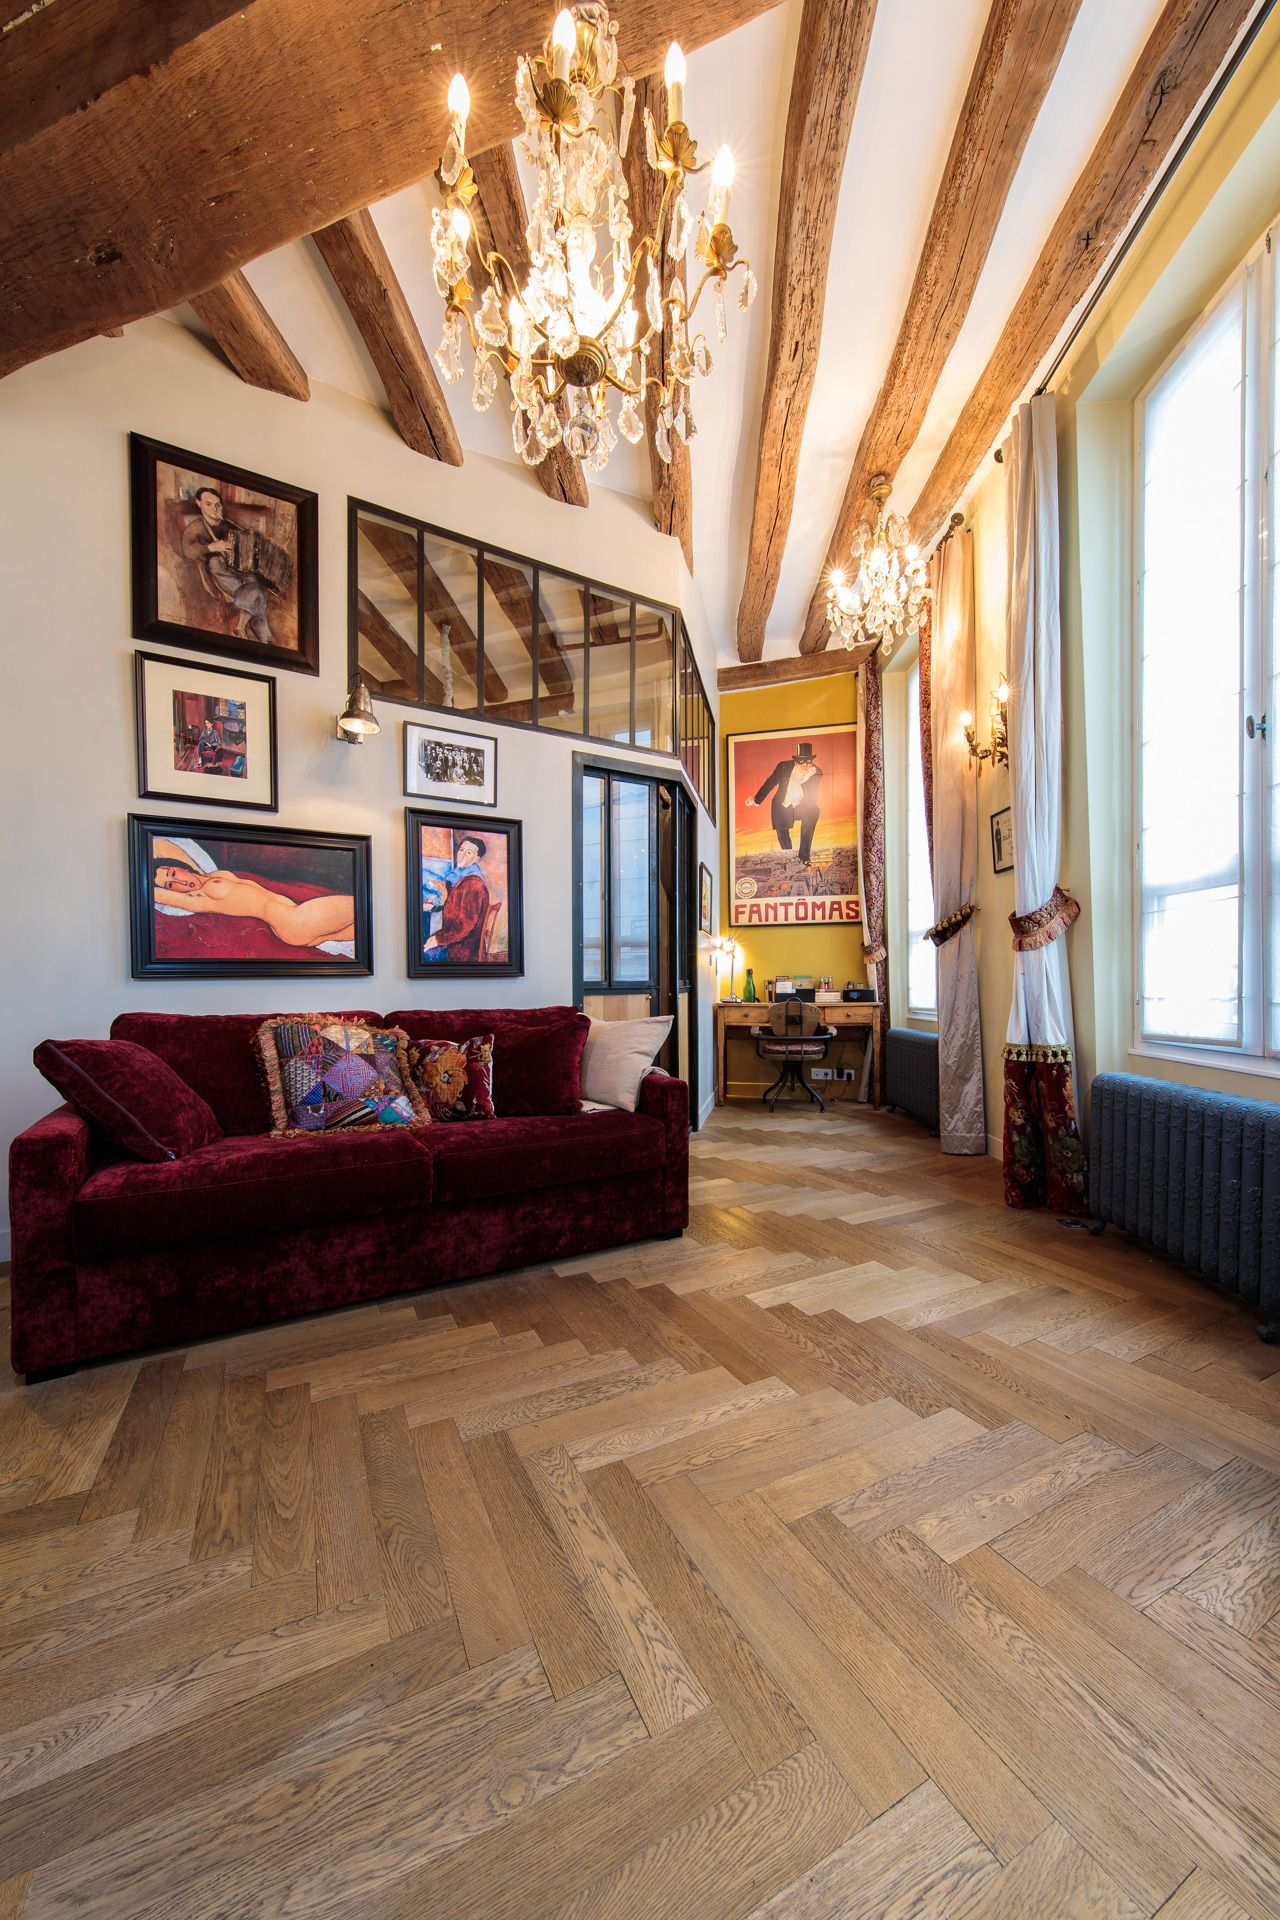 Aniando Parquet A Batons Rompus Chene Massif Vieilli Huile Collection Couleurs Du Te Idee Decoration Salon Pose Parquet Massif Decoration Salon Originale